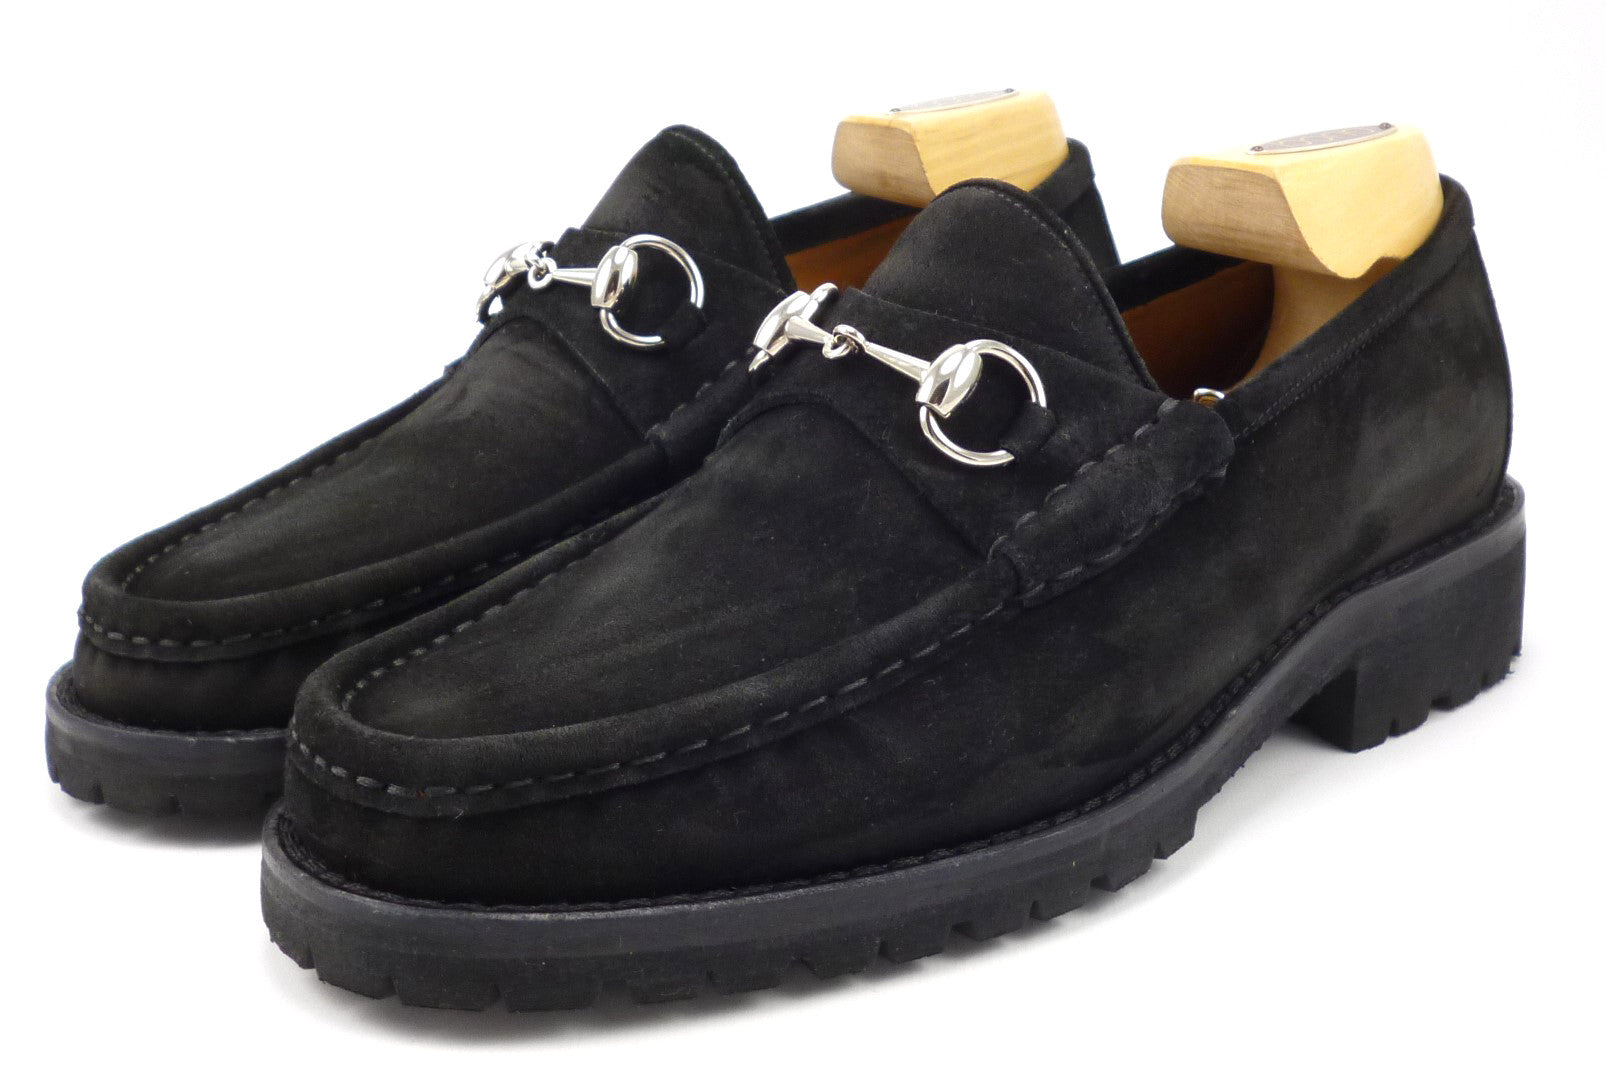 Shoes 7.5 US Suede Bit Loafers Black